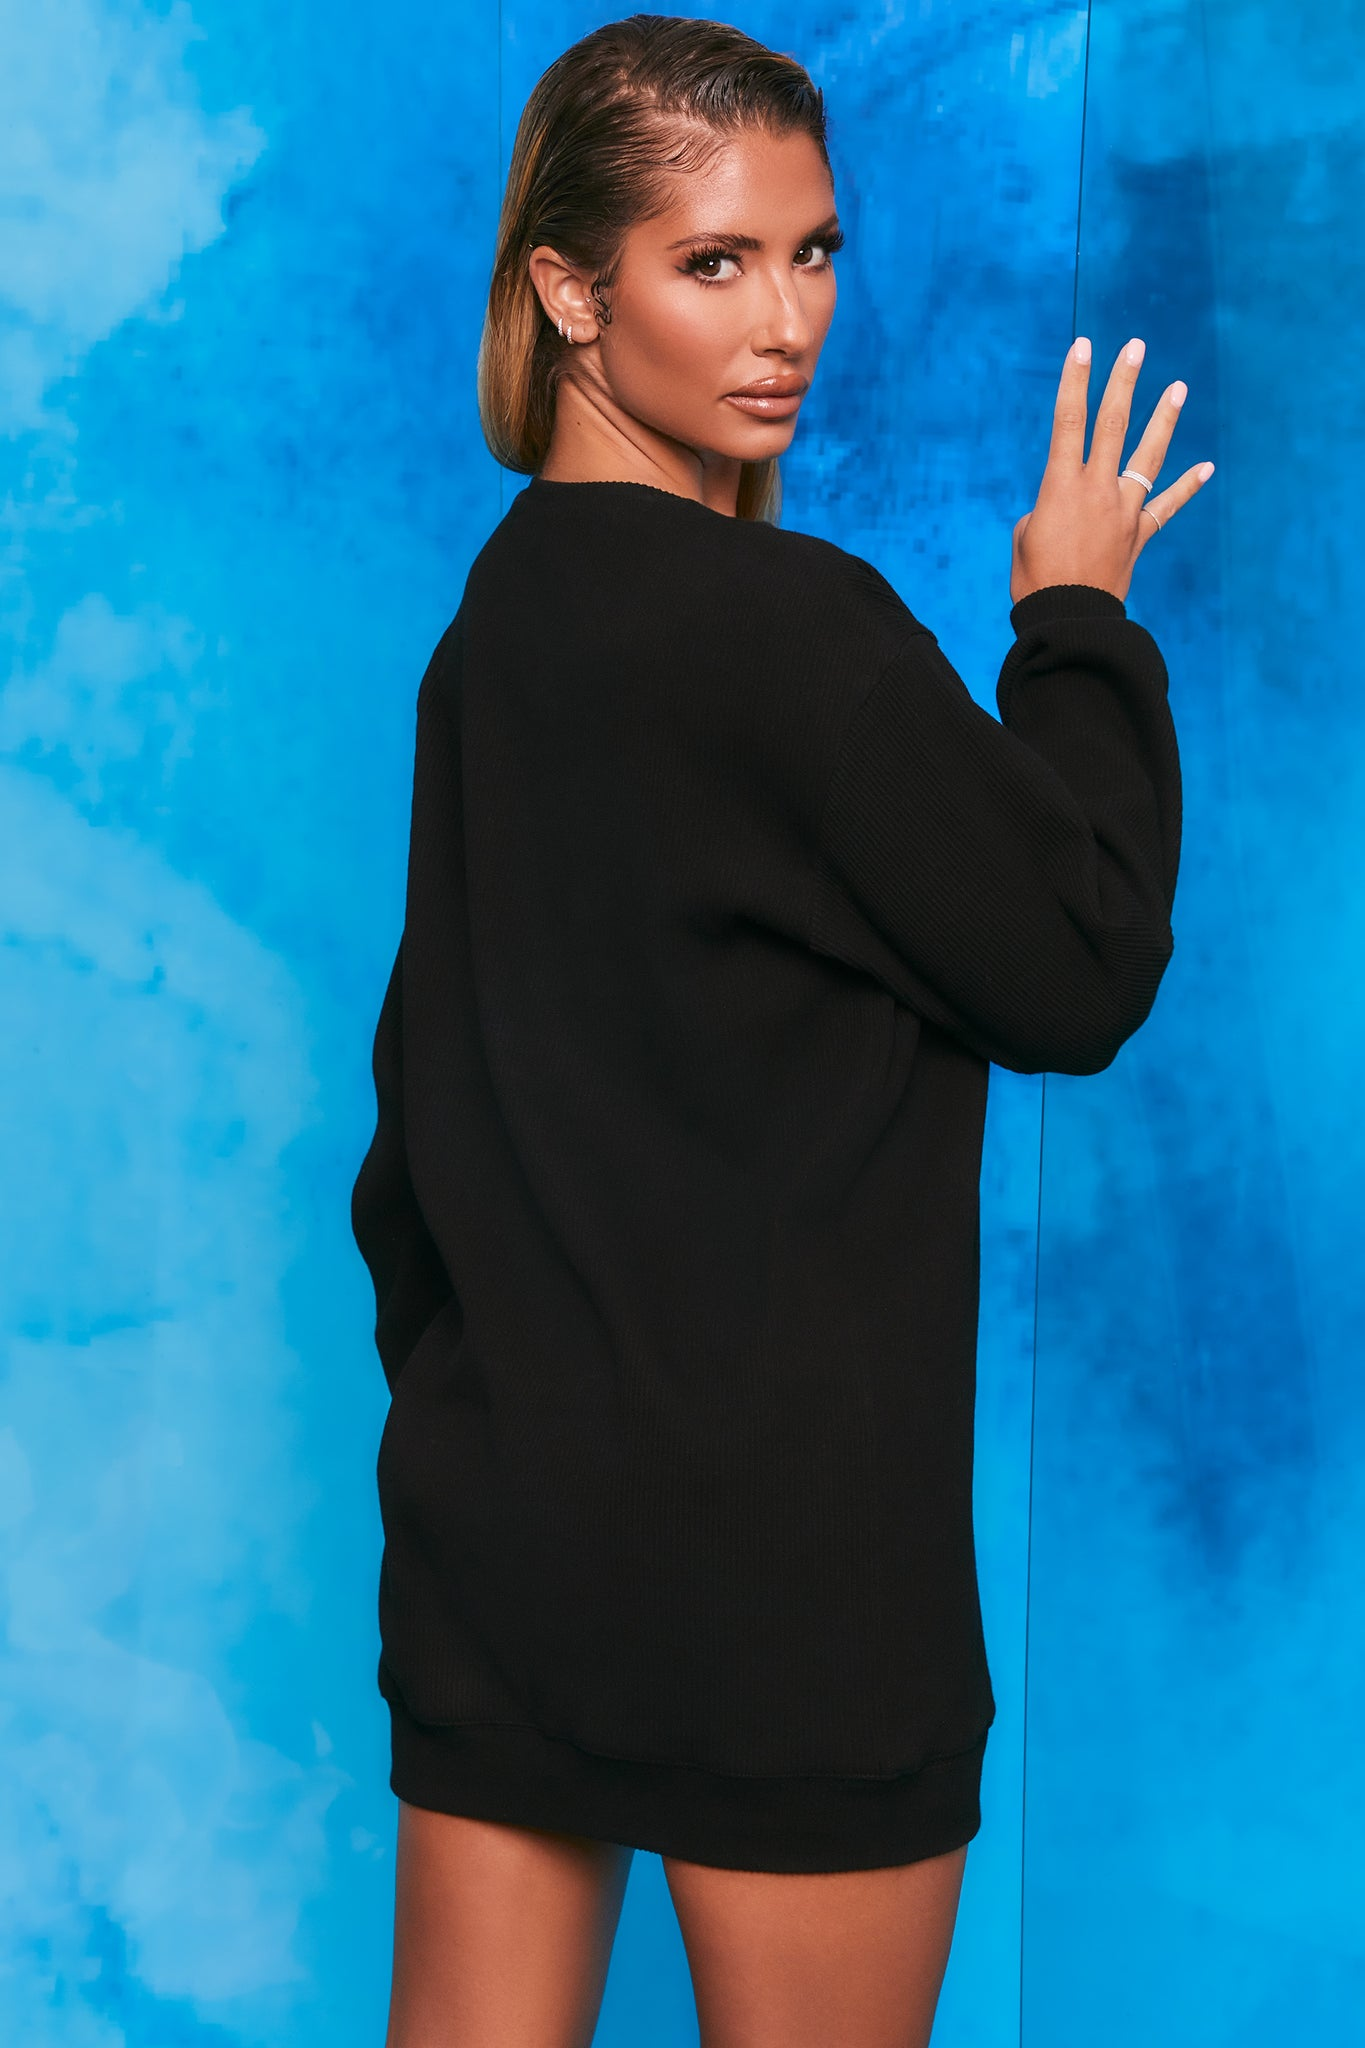 Plain black ribbed oversized sweatshirt with long sleeves. Image 3 of 6.